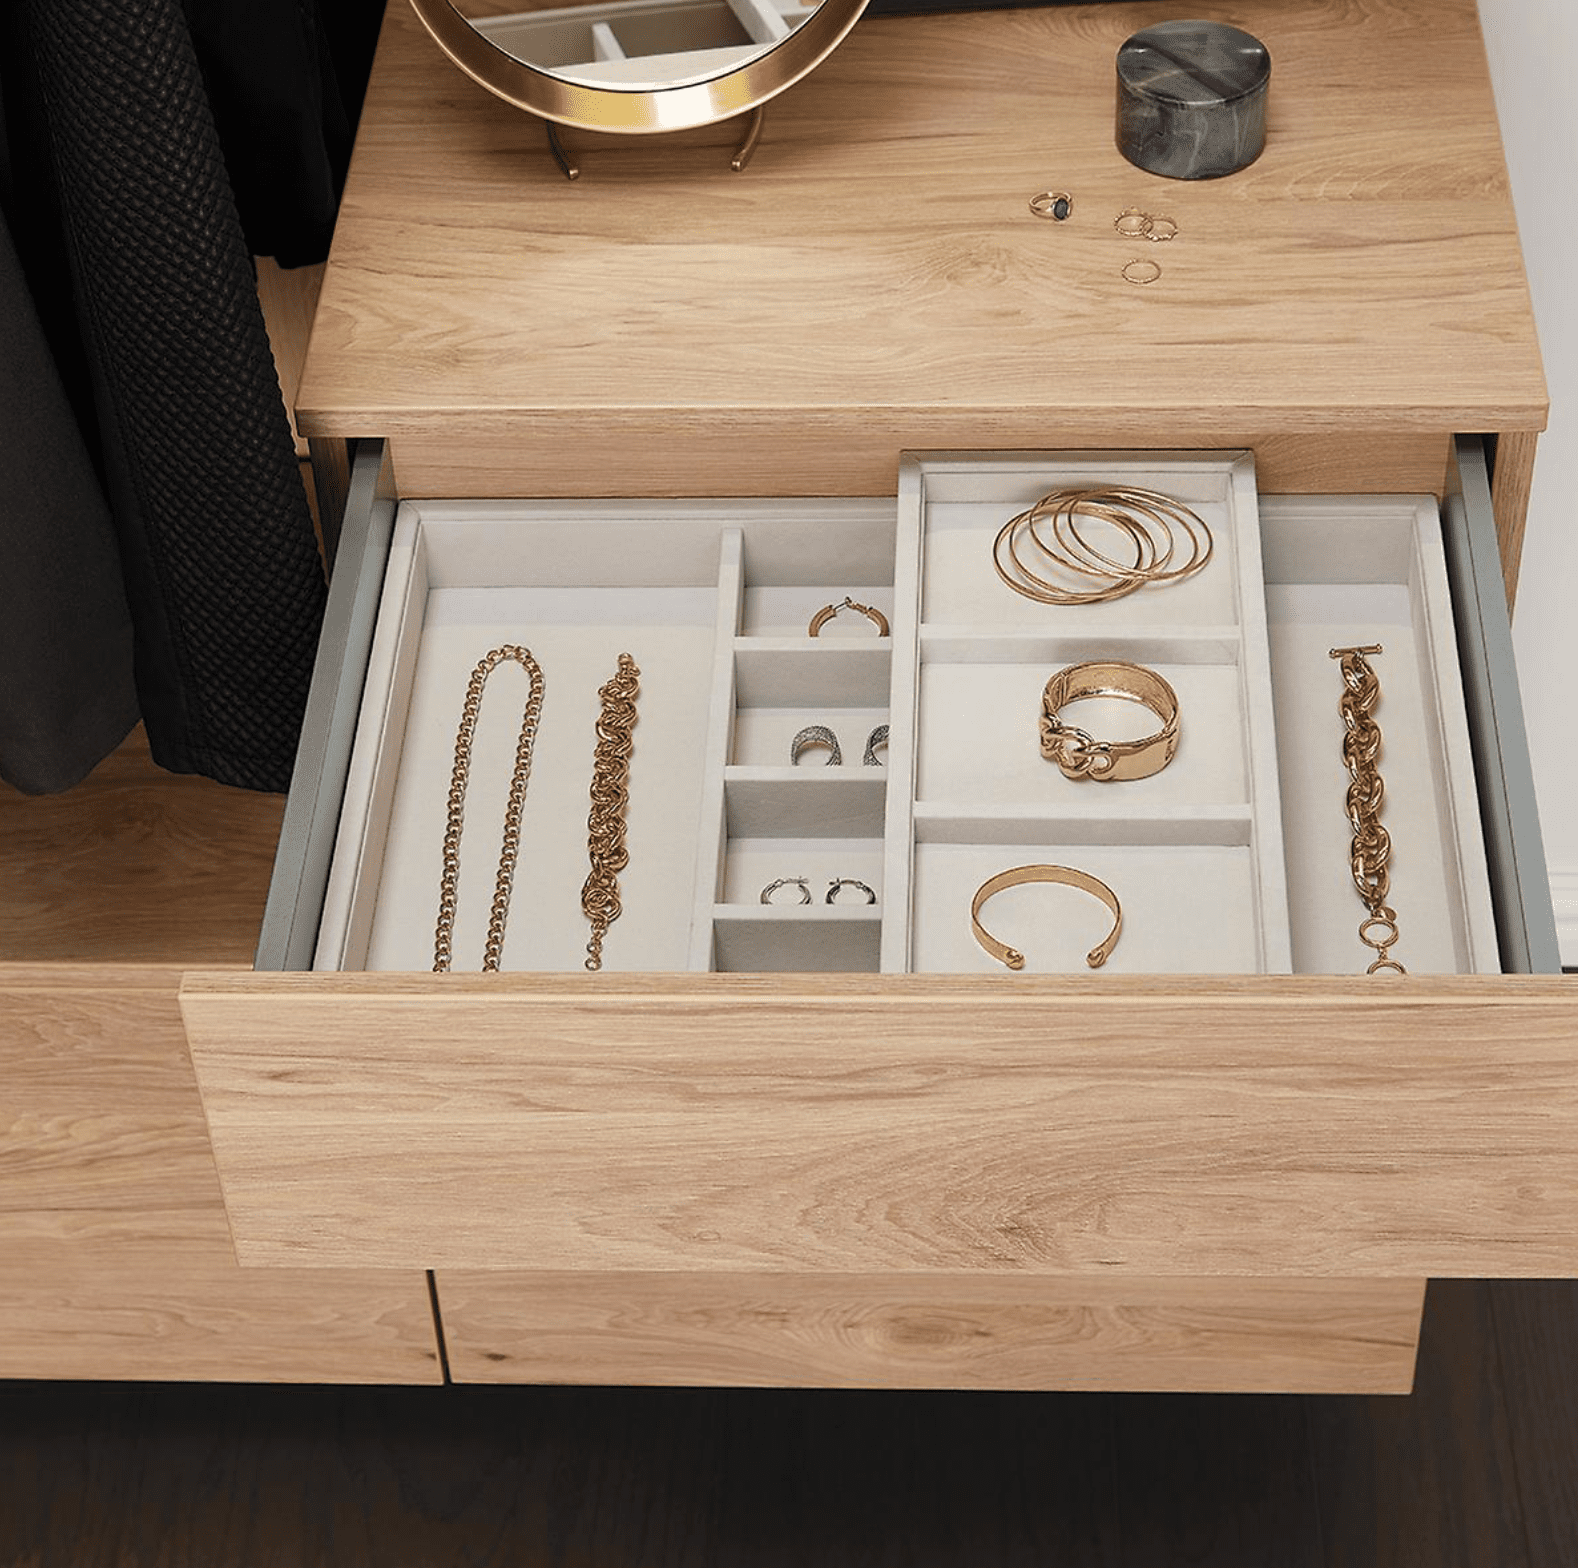 A jewelry organizer, which is currently for sale at The Container Store